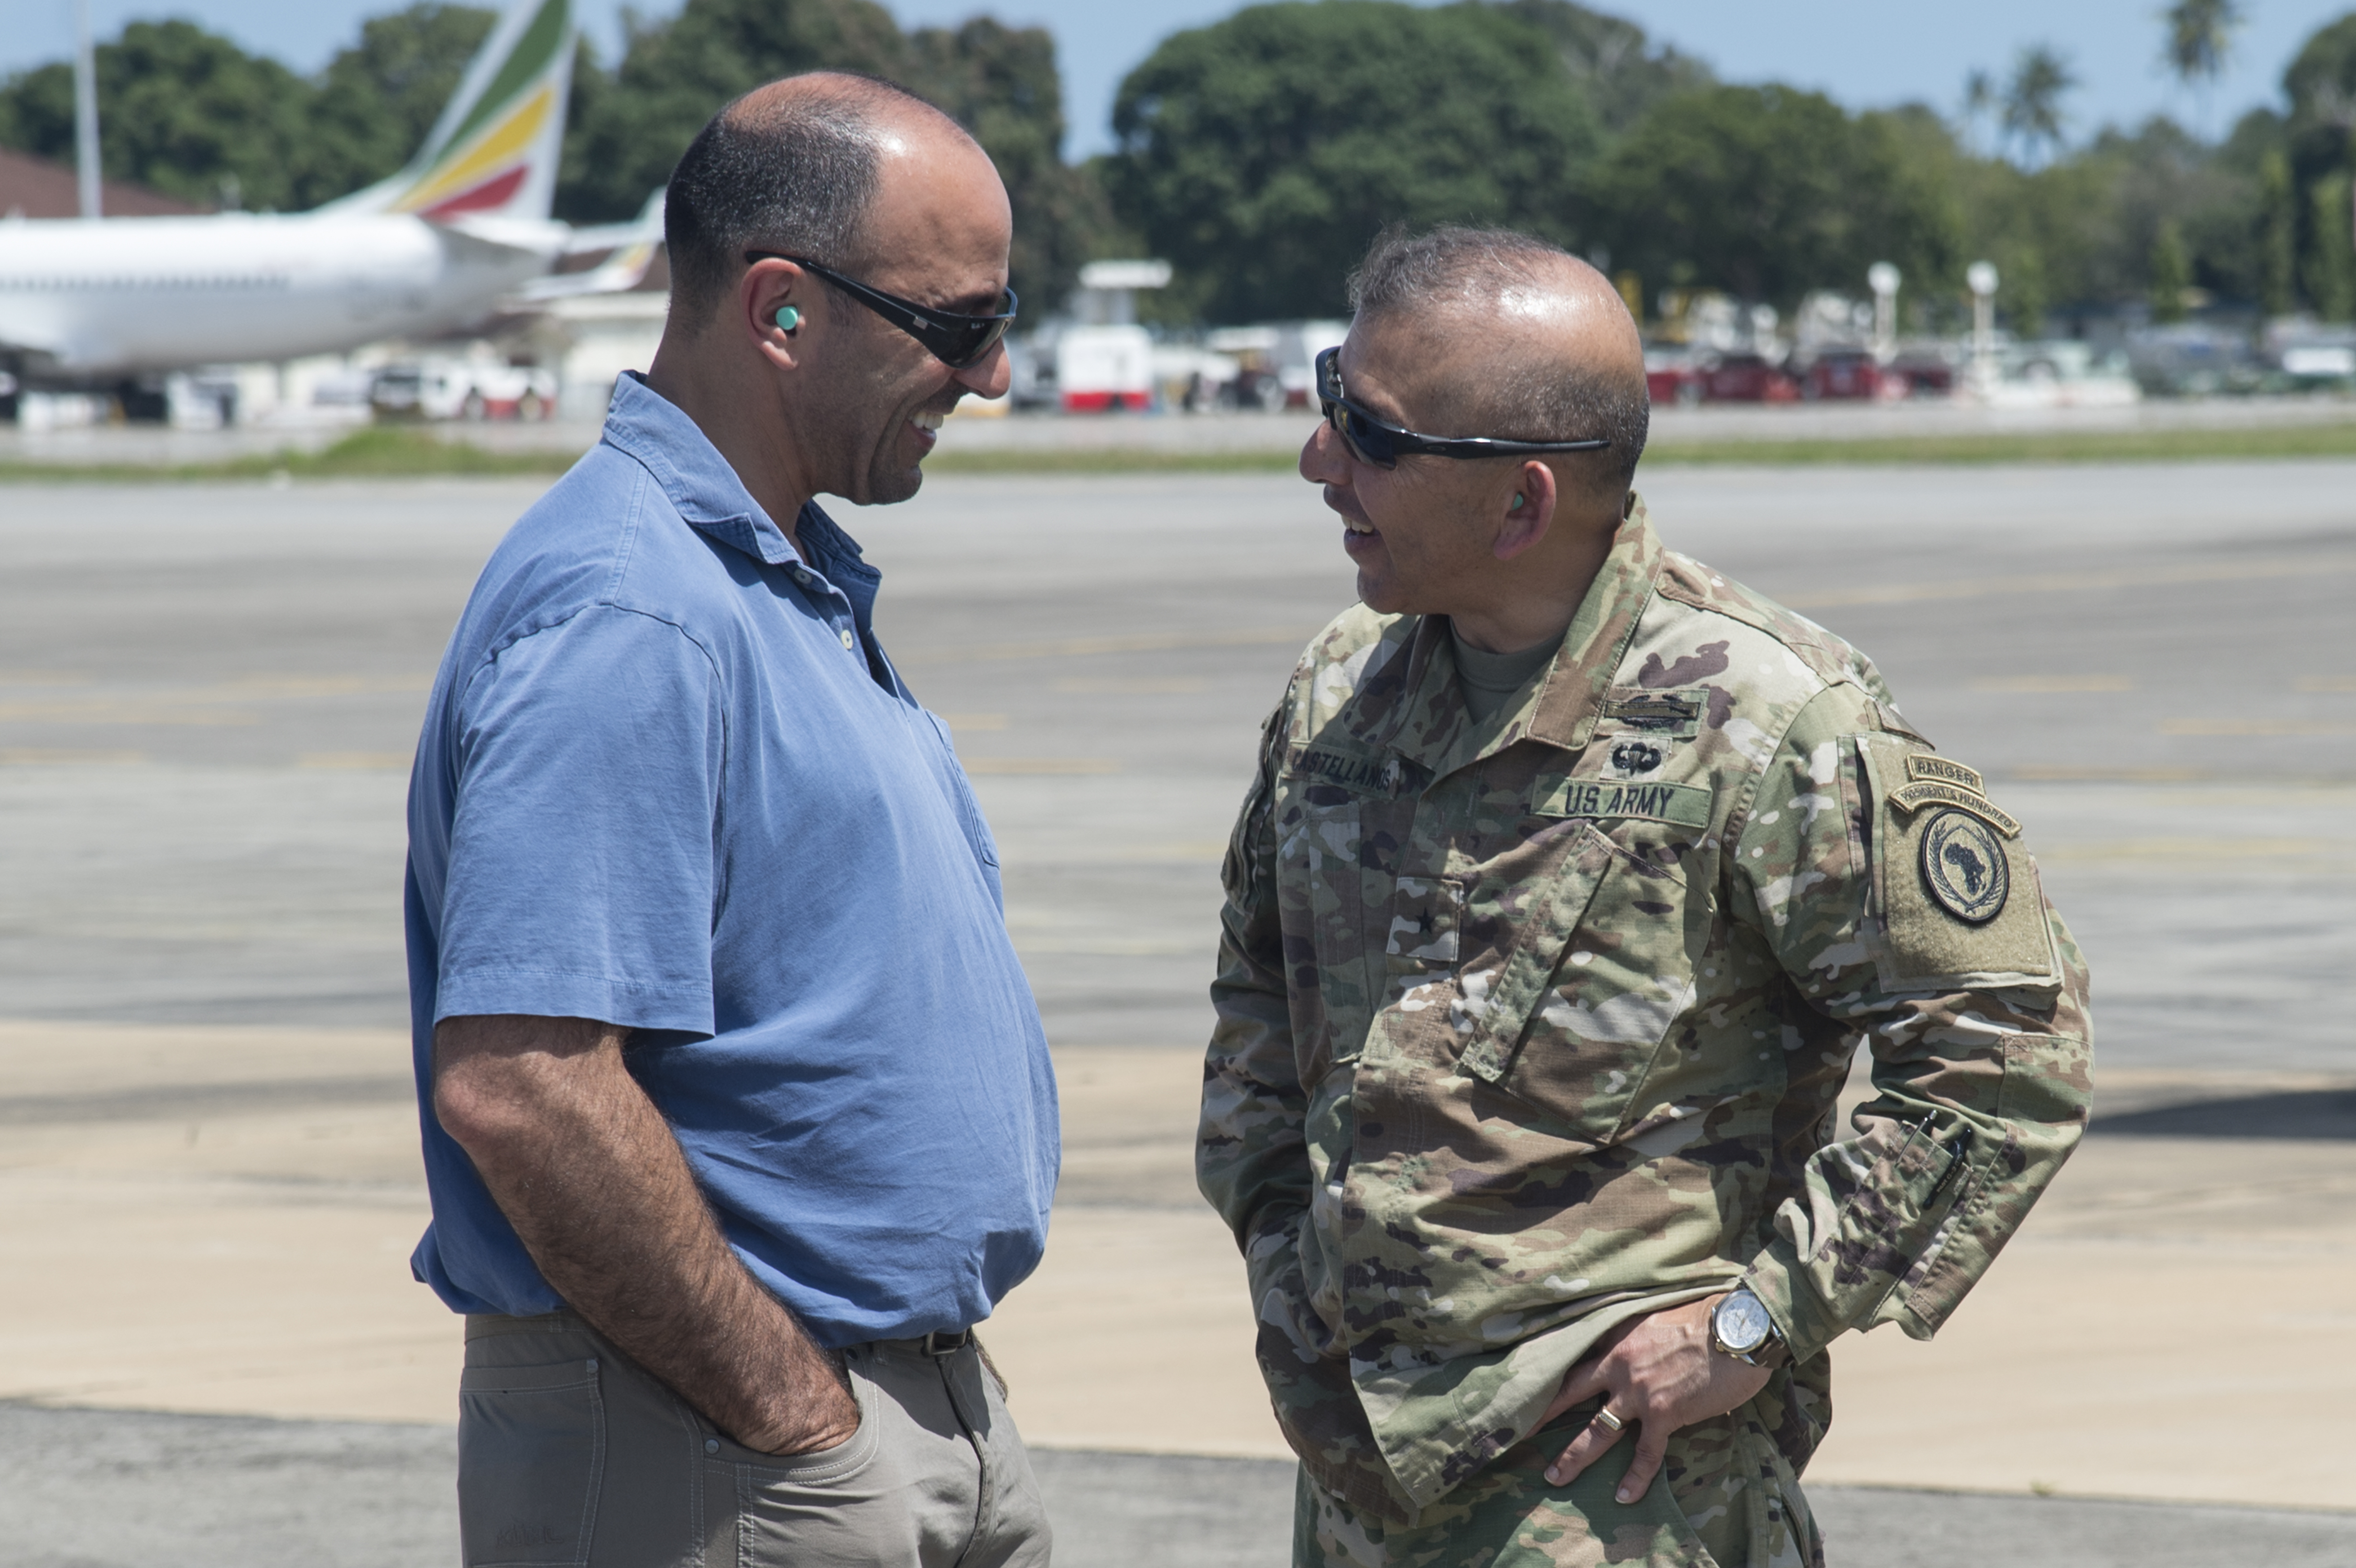 Rep. Jimmy Panetta (D-Calif.), speaks with U.S. Army Brig. Gen. Miguel Castellanos, Combined Joint Task Force-Horn of Africa deputy commanding general in Somalia and Mogadishu Coordination Cell director, during a congressional delegation (CODEL) visit of various locations within the CJTF-HOA area of responsibility. During their three-day visit, the CODEL met U.S. service members and learned more about the U.S. military mission in East Africa. The CODEL included the following congressmen, all of whom are on the House Armed Service Committee; Rep. Austin Scott (R-Ga.) representing the 8th District of Georgia; Rep. Jimmy Panetta (D-Calif.) representing the 20th District of California; and Rep. Marc Veasey (D-Texas) representing the 33rd District of Texas. (U.S. Air National Guard photo by Tech. Sgt. Joe Harwood)